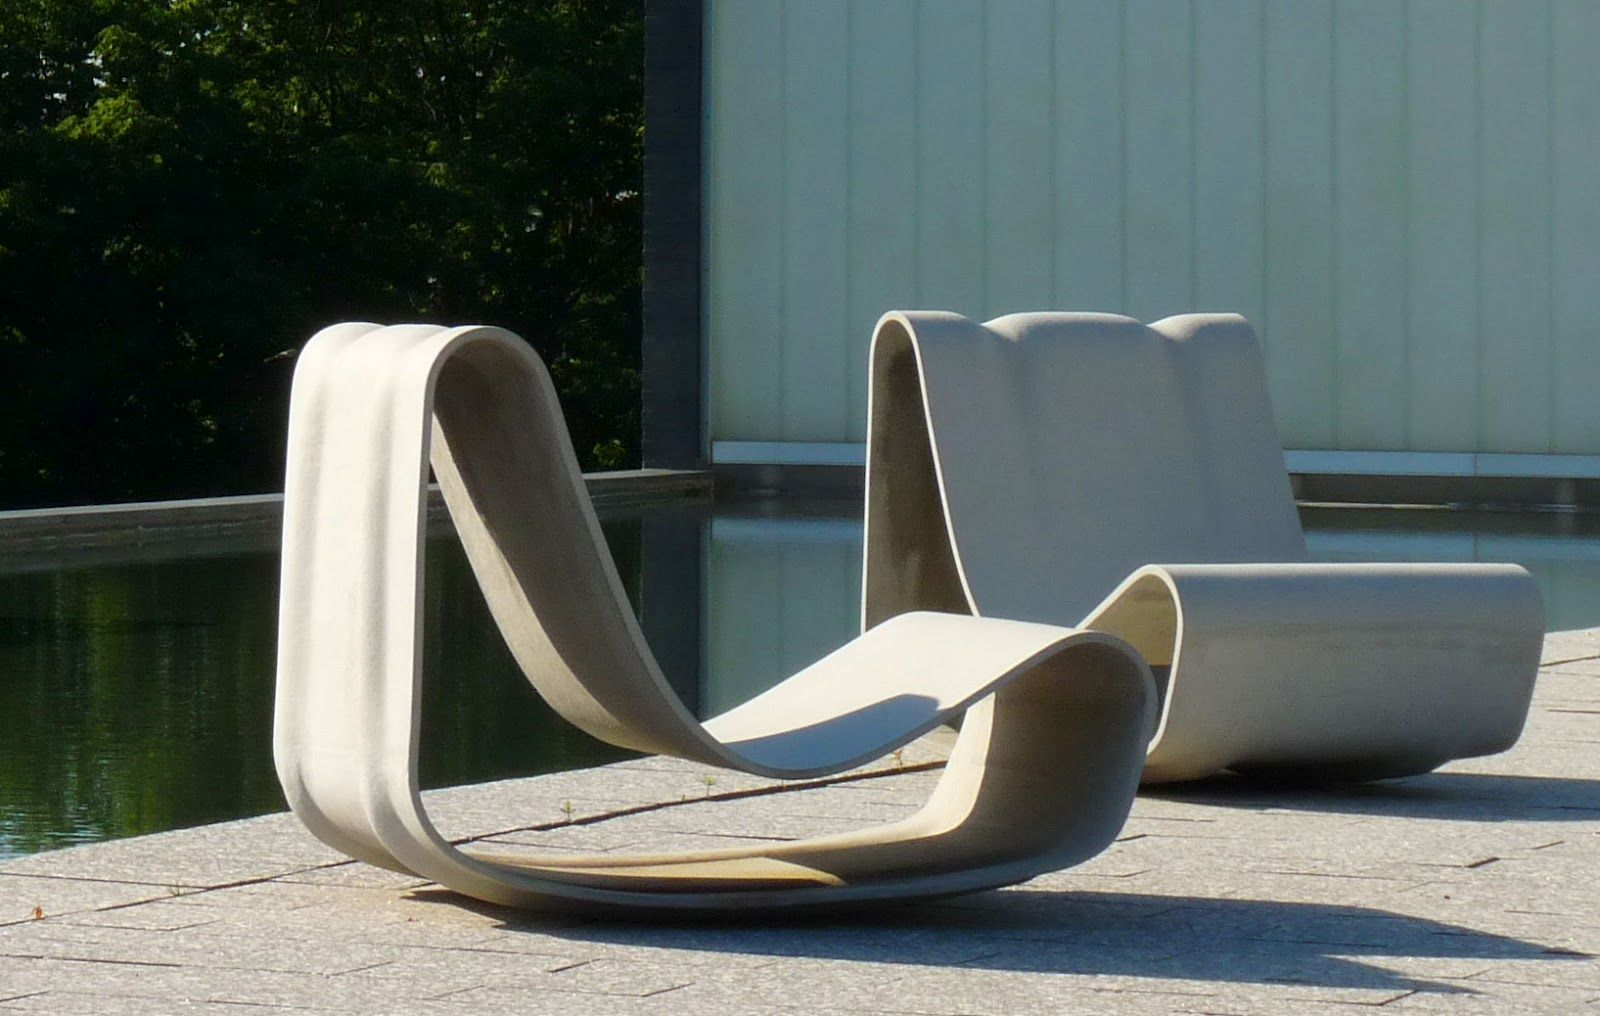 Outdoor Concrete Chair | Furniture | Pinterest | Modern Outdoor Chairs,  Interior Designing And Concrete